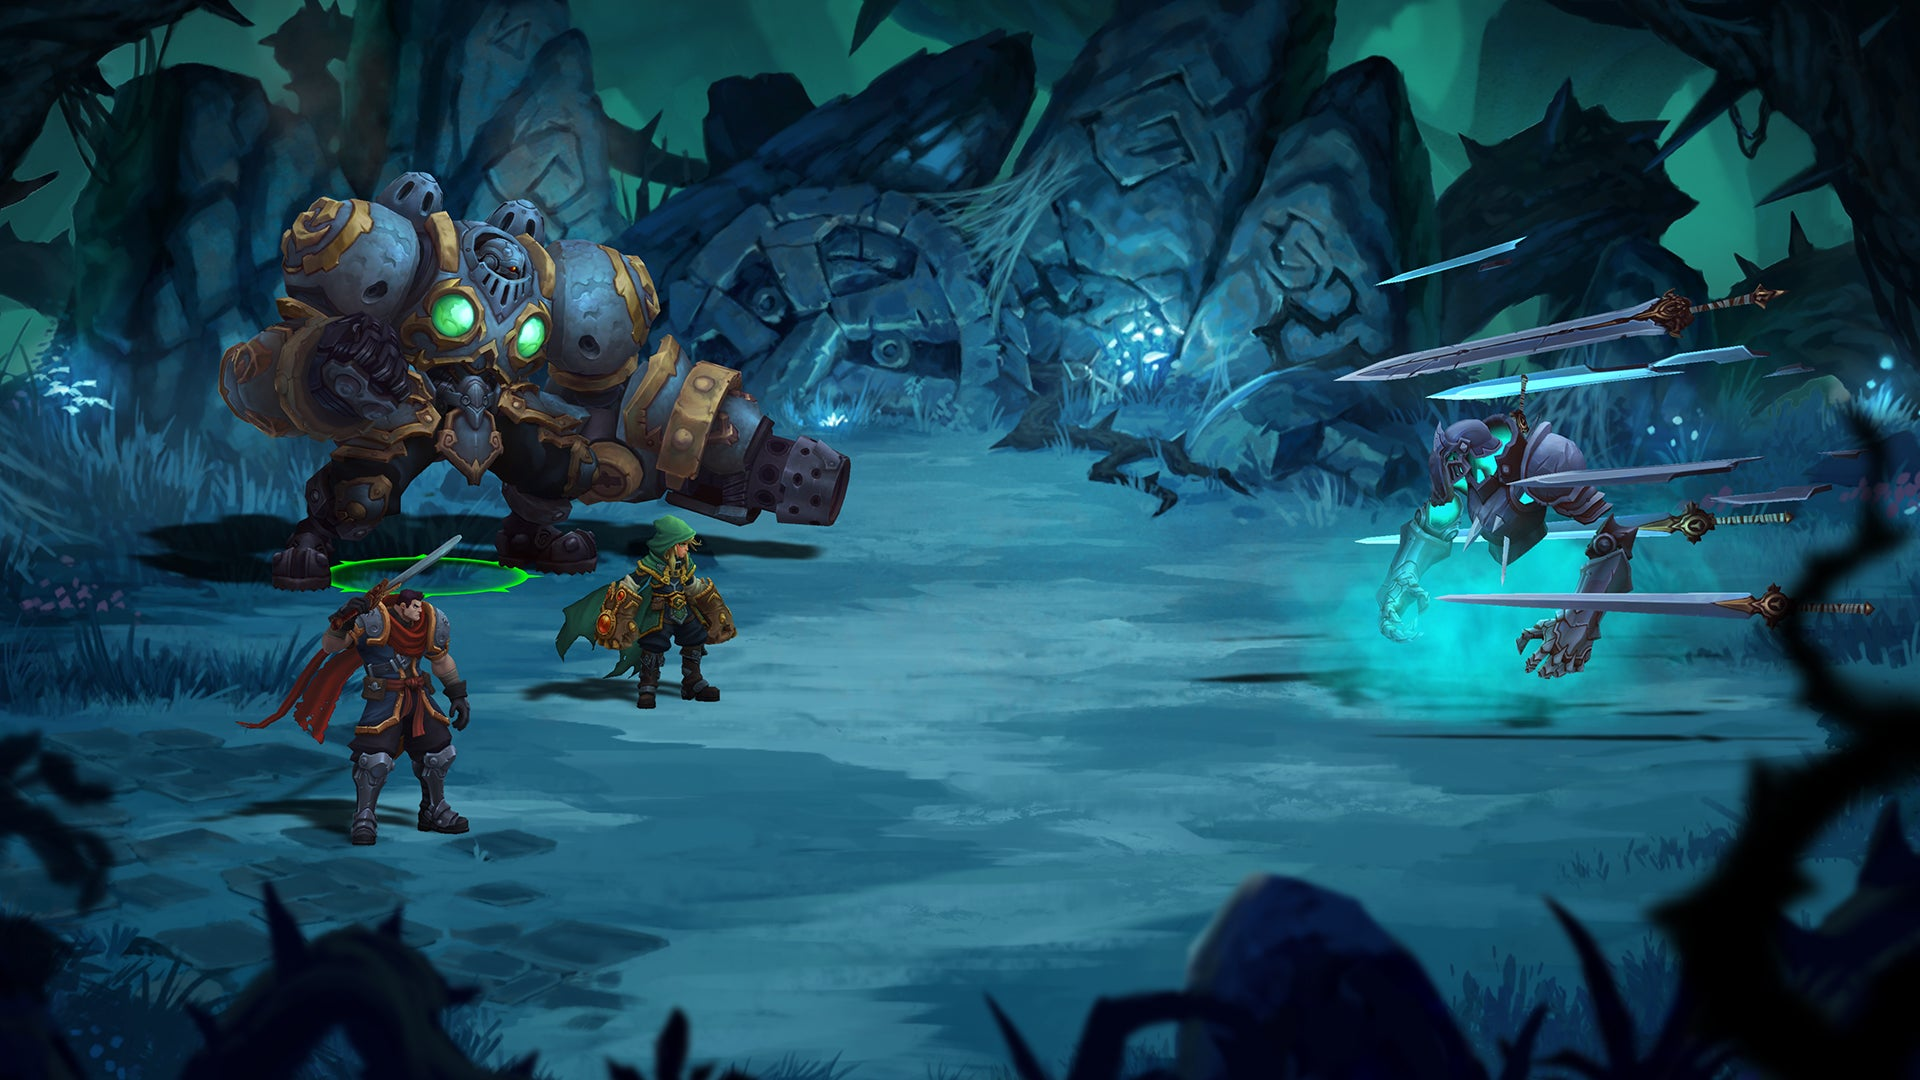 Battle Chasers Works Much Better As A Video Game Than A Comic Book